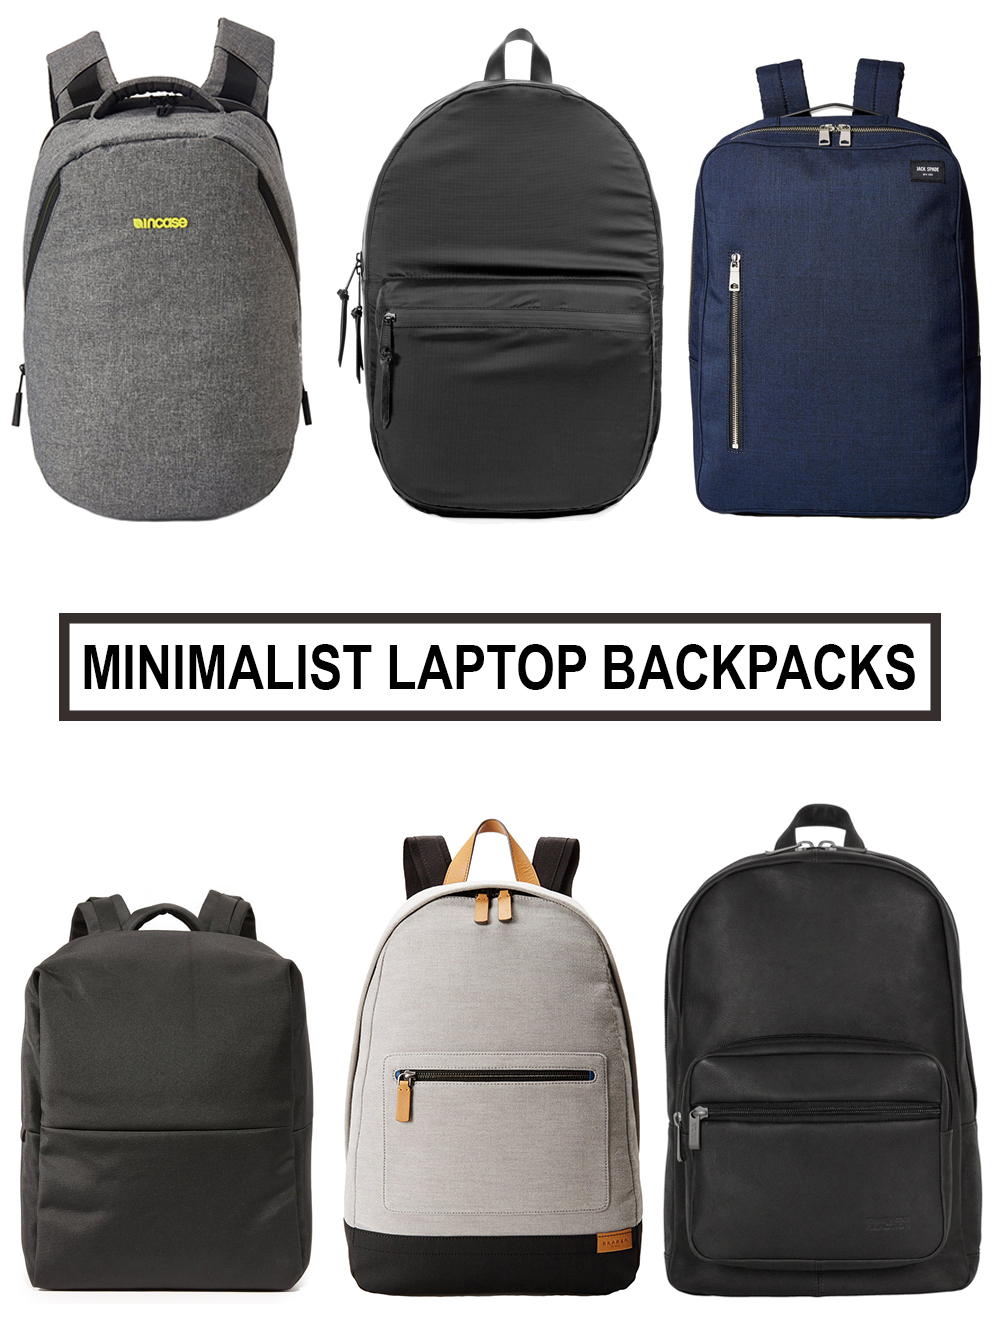 Minimalist Backpack Buying Guide